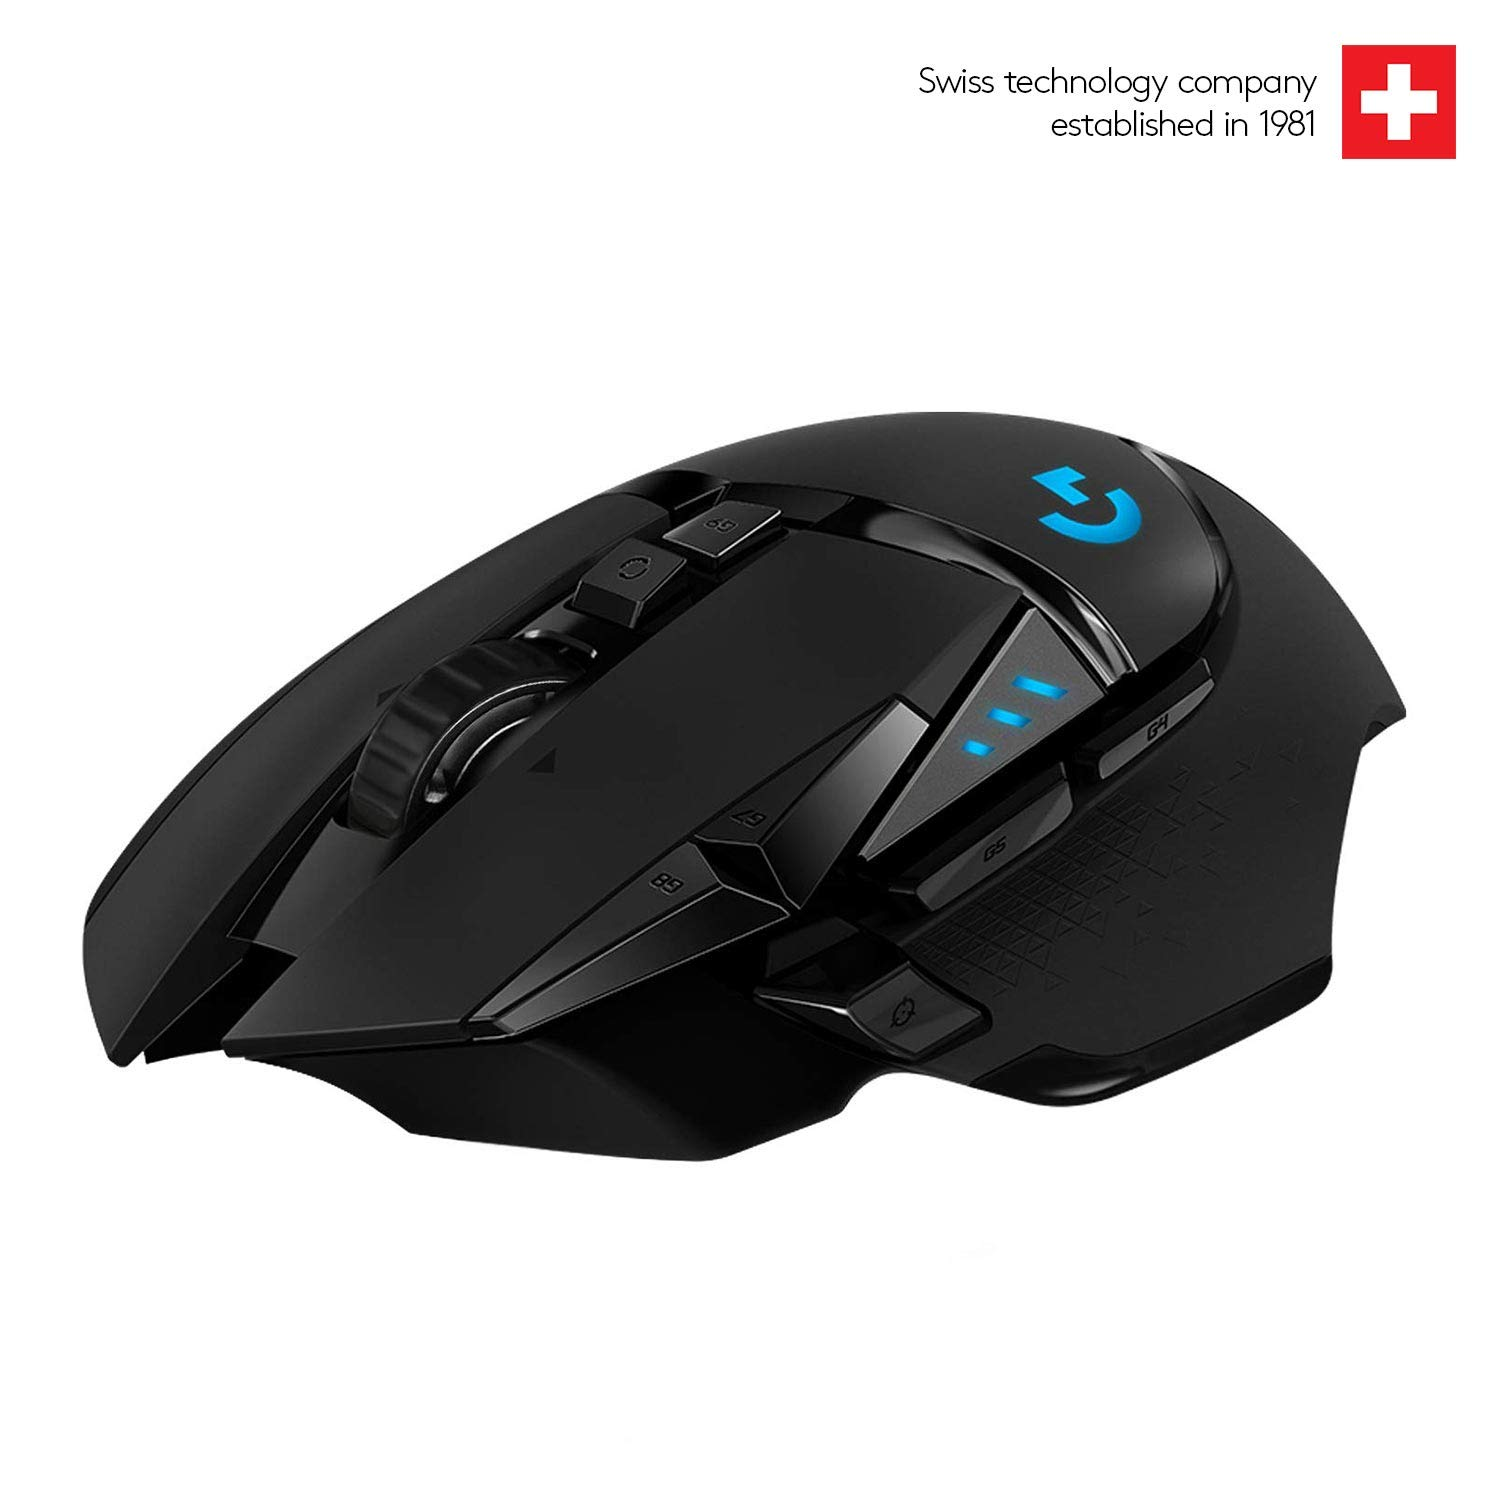 Logitech G502 best gaming mouse